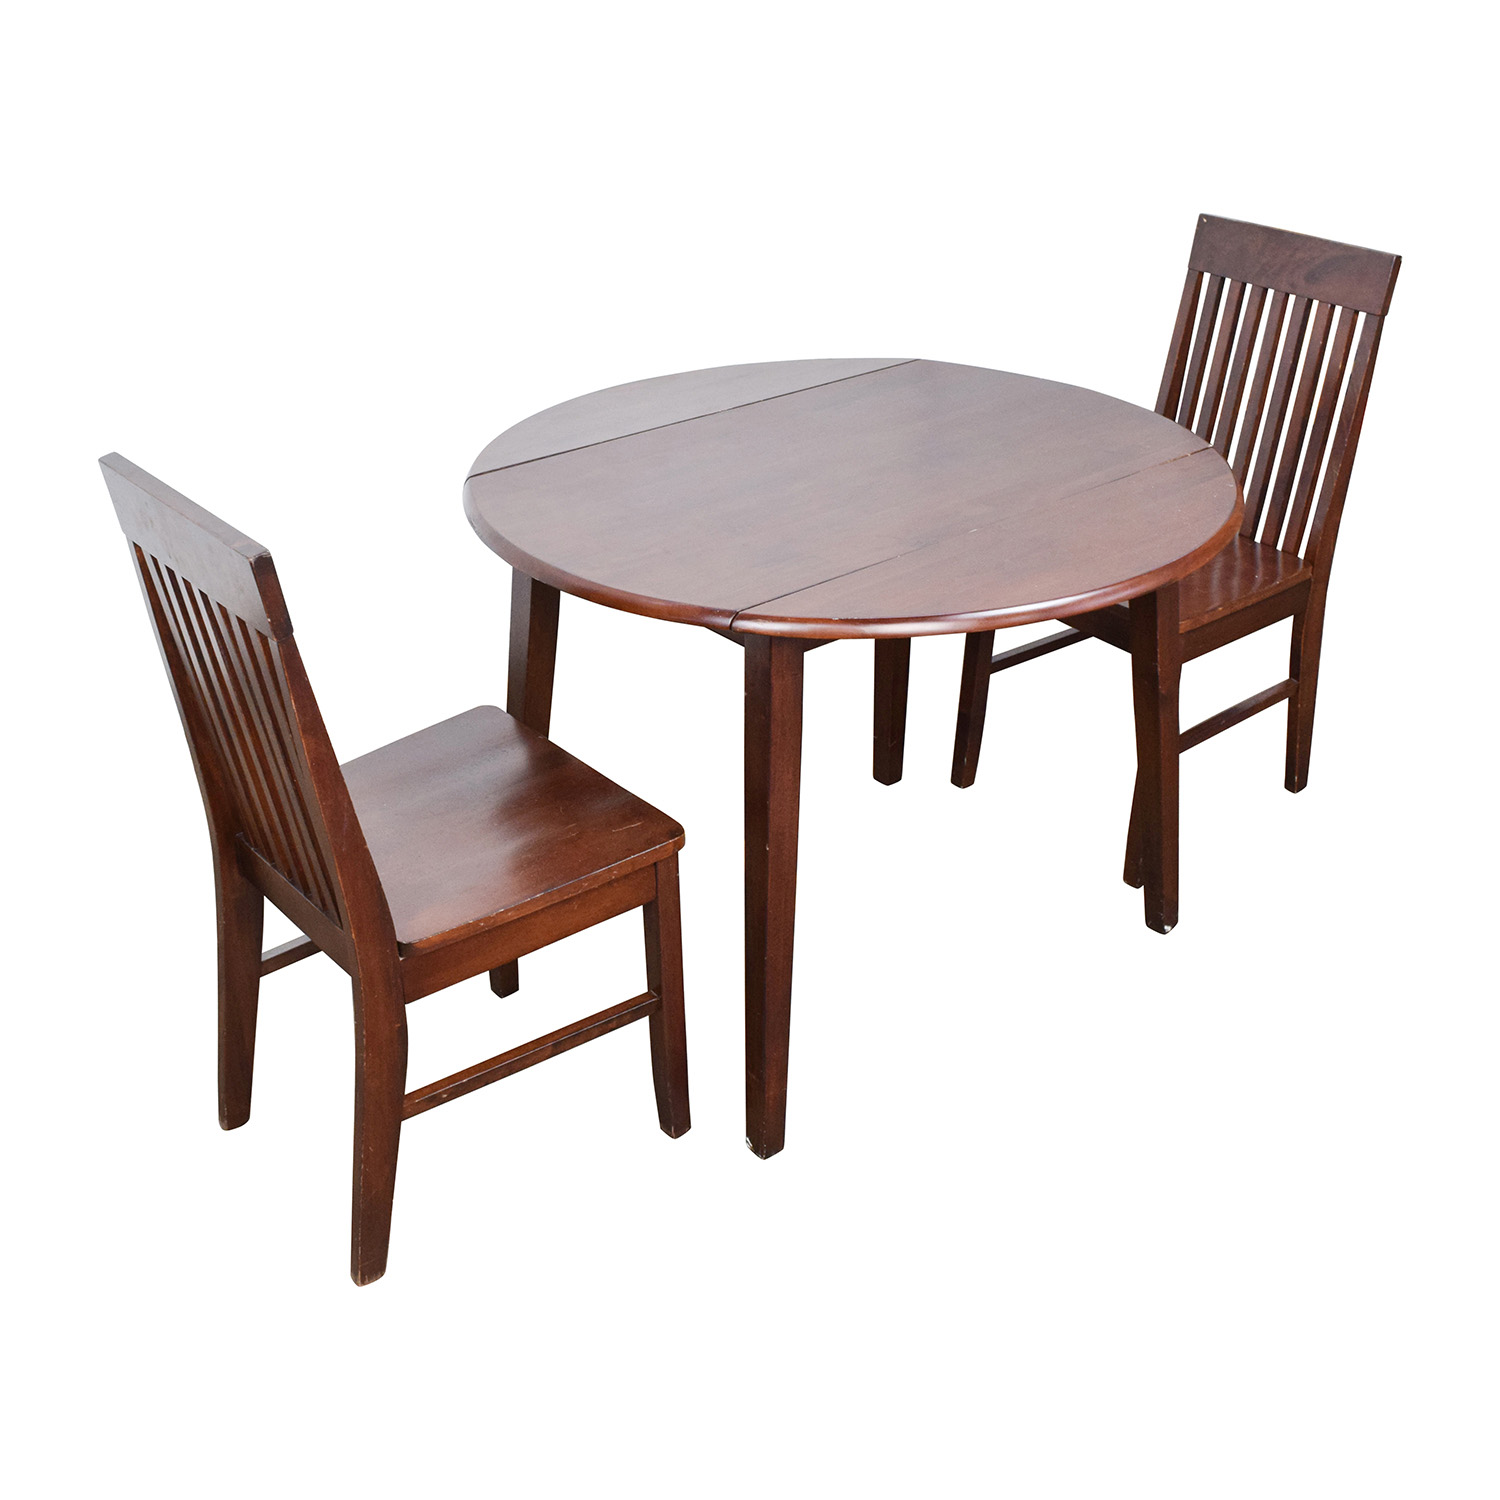 Round Dining Table With Folding Sides And Chairs